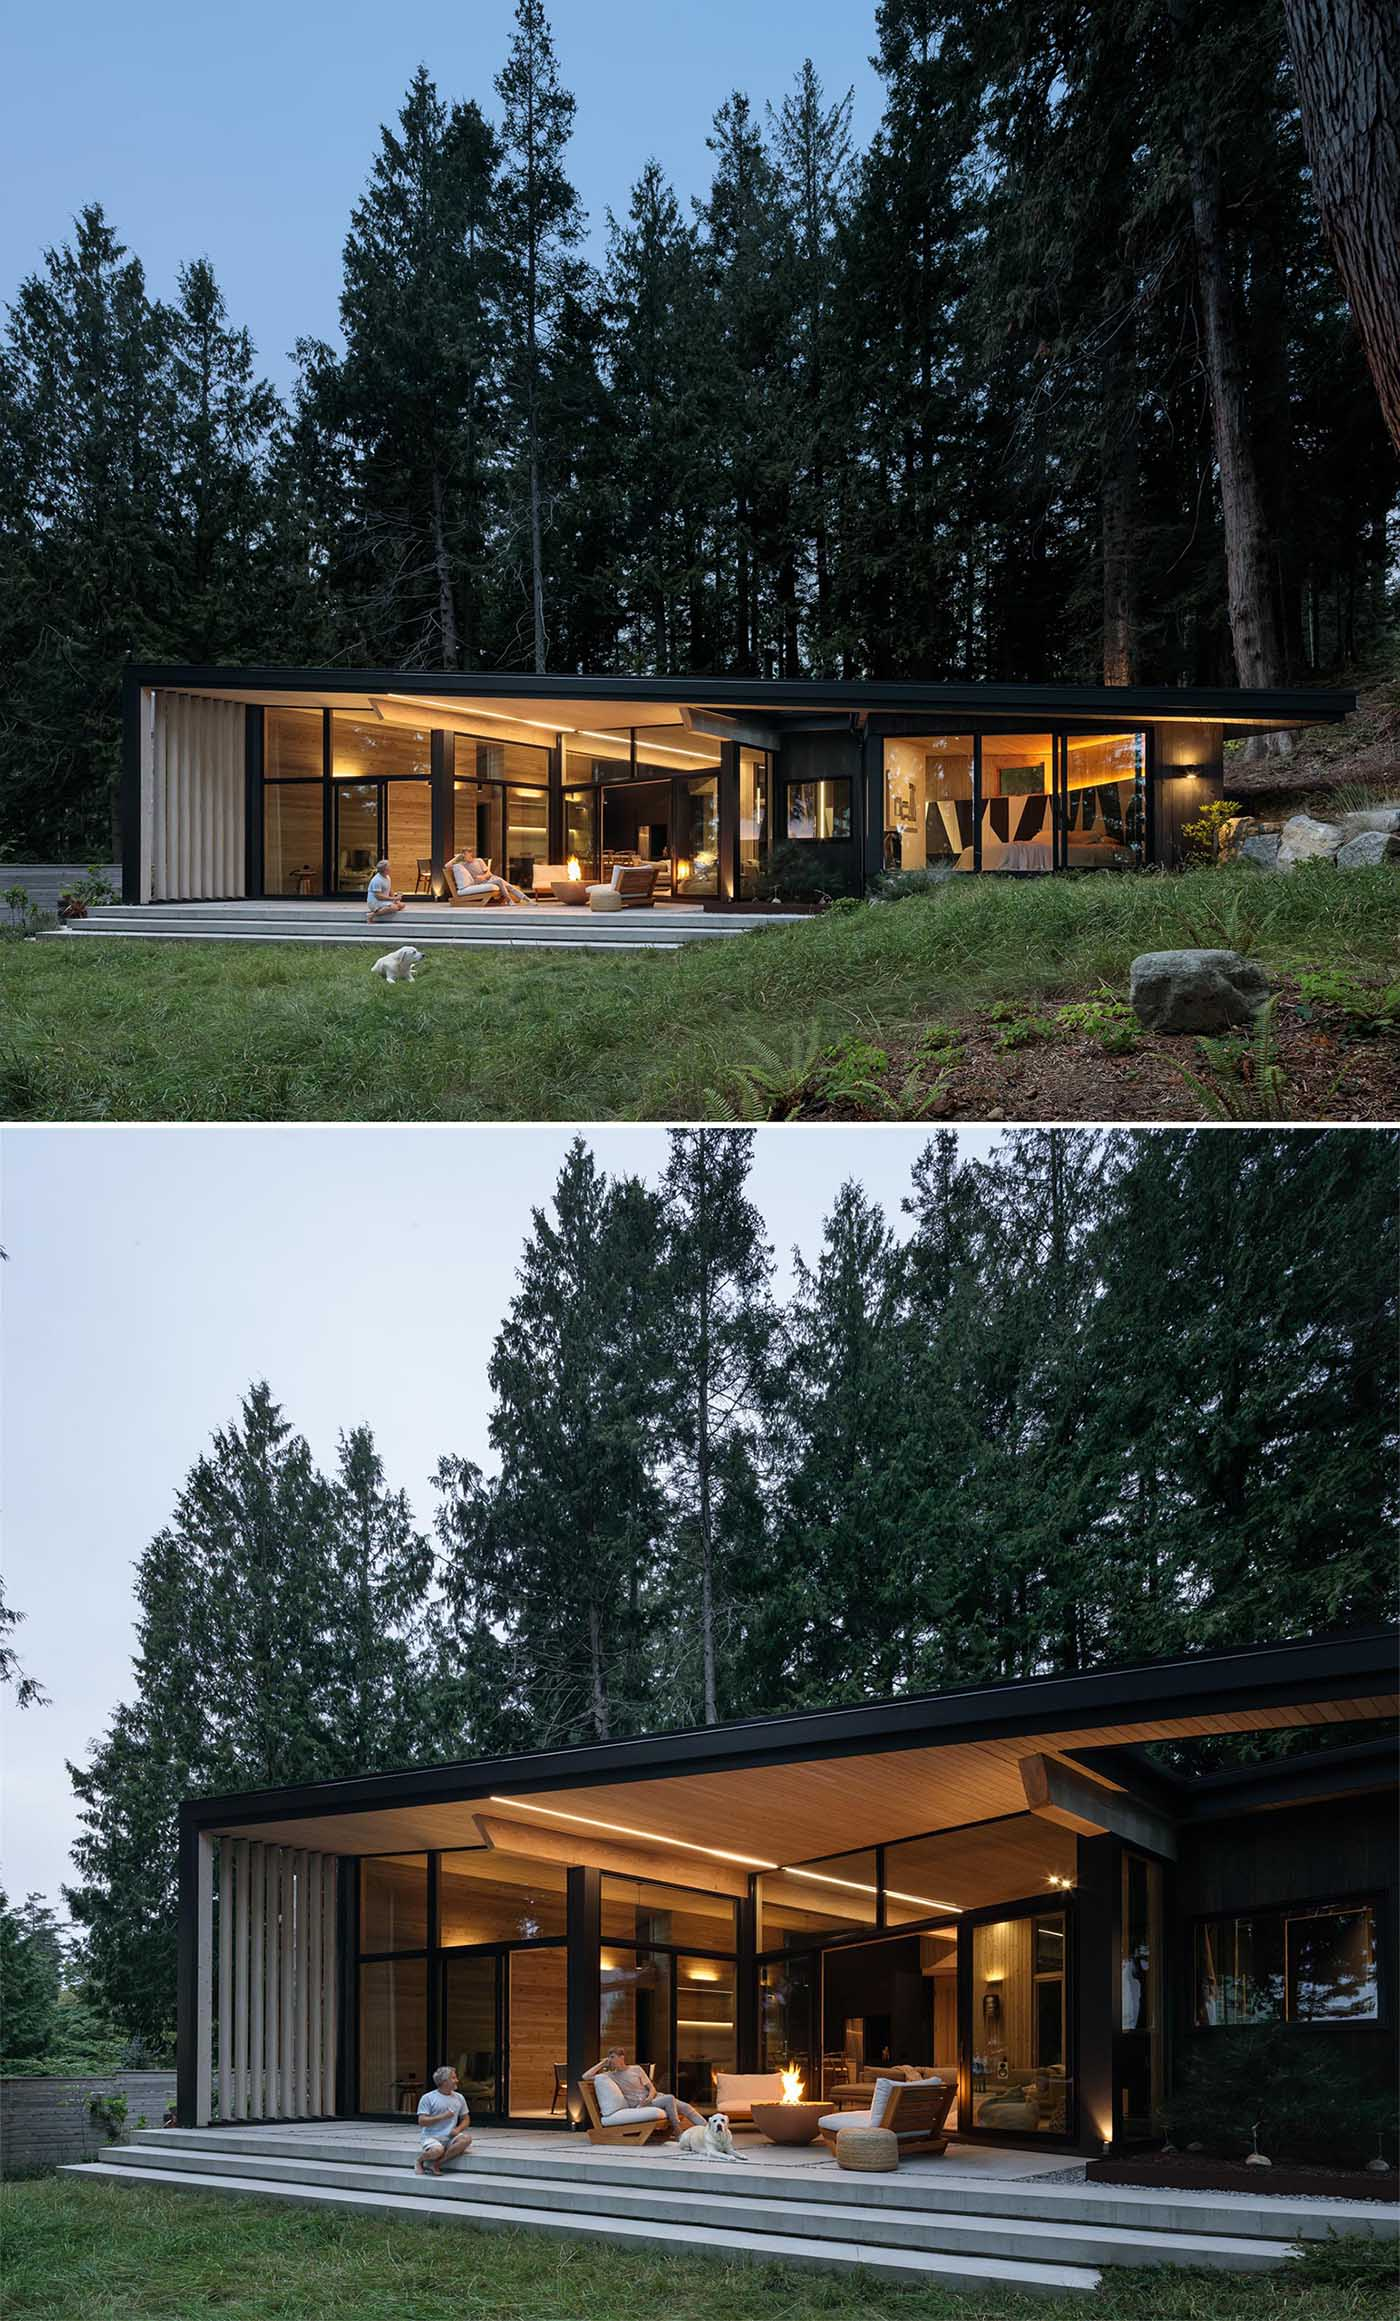 This modern cabin is clad with second-growth managed forestry cedar inside and out.